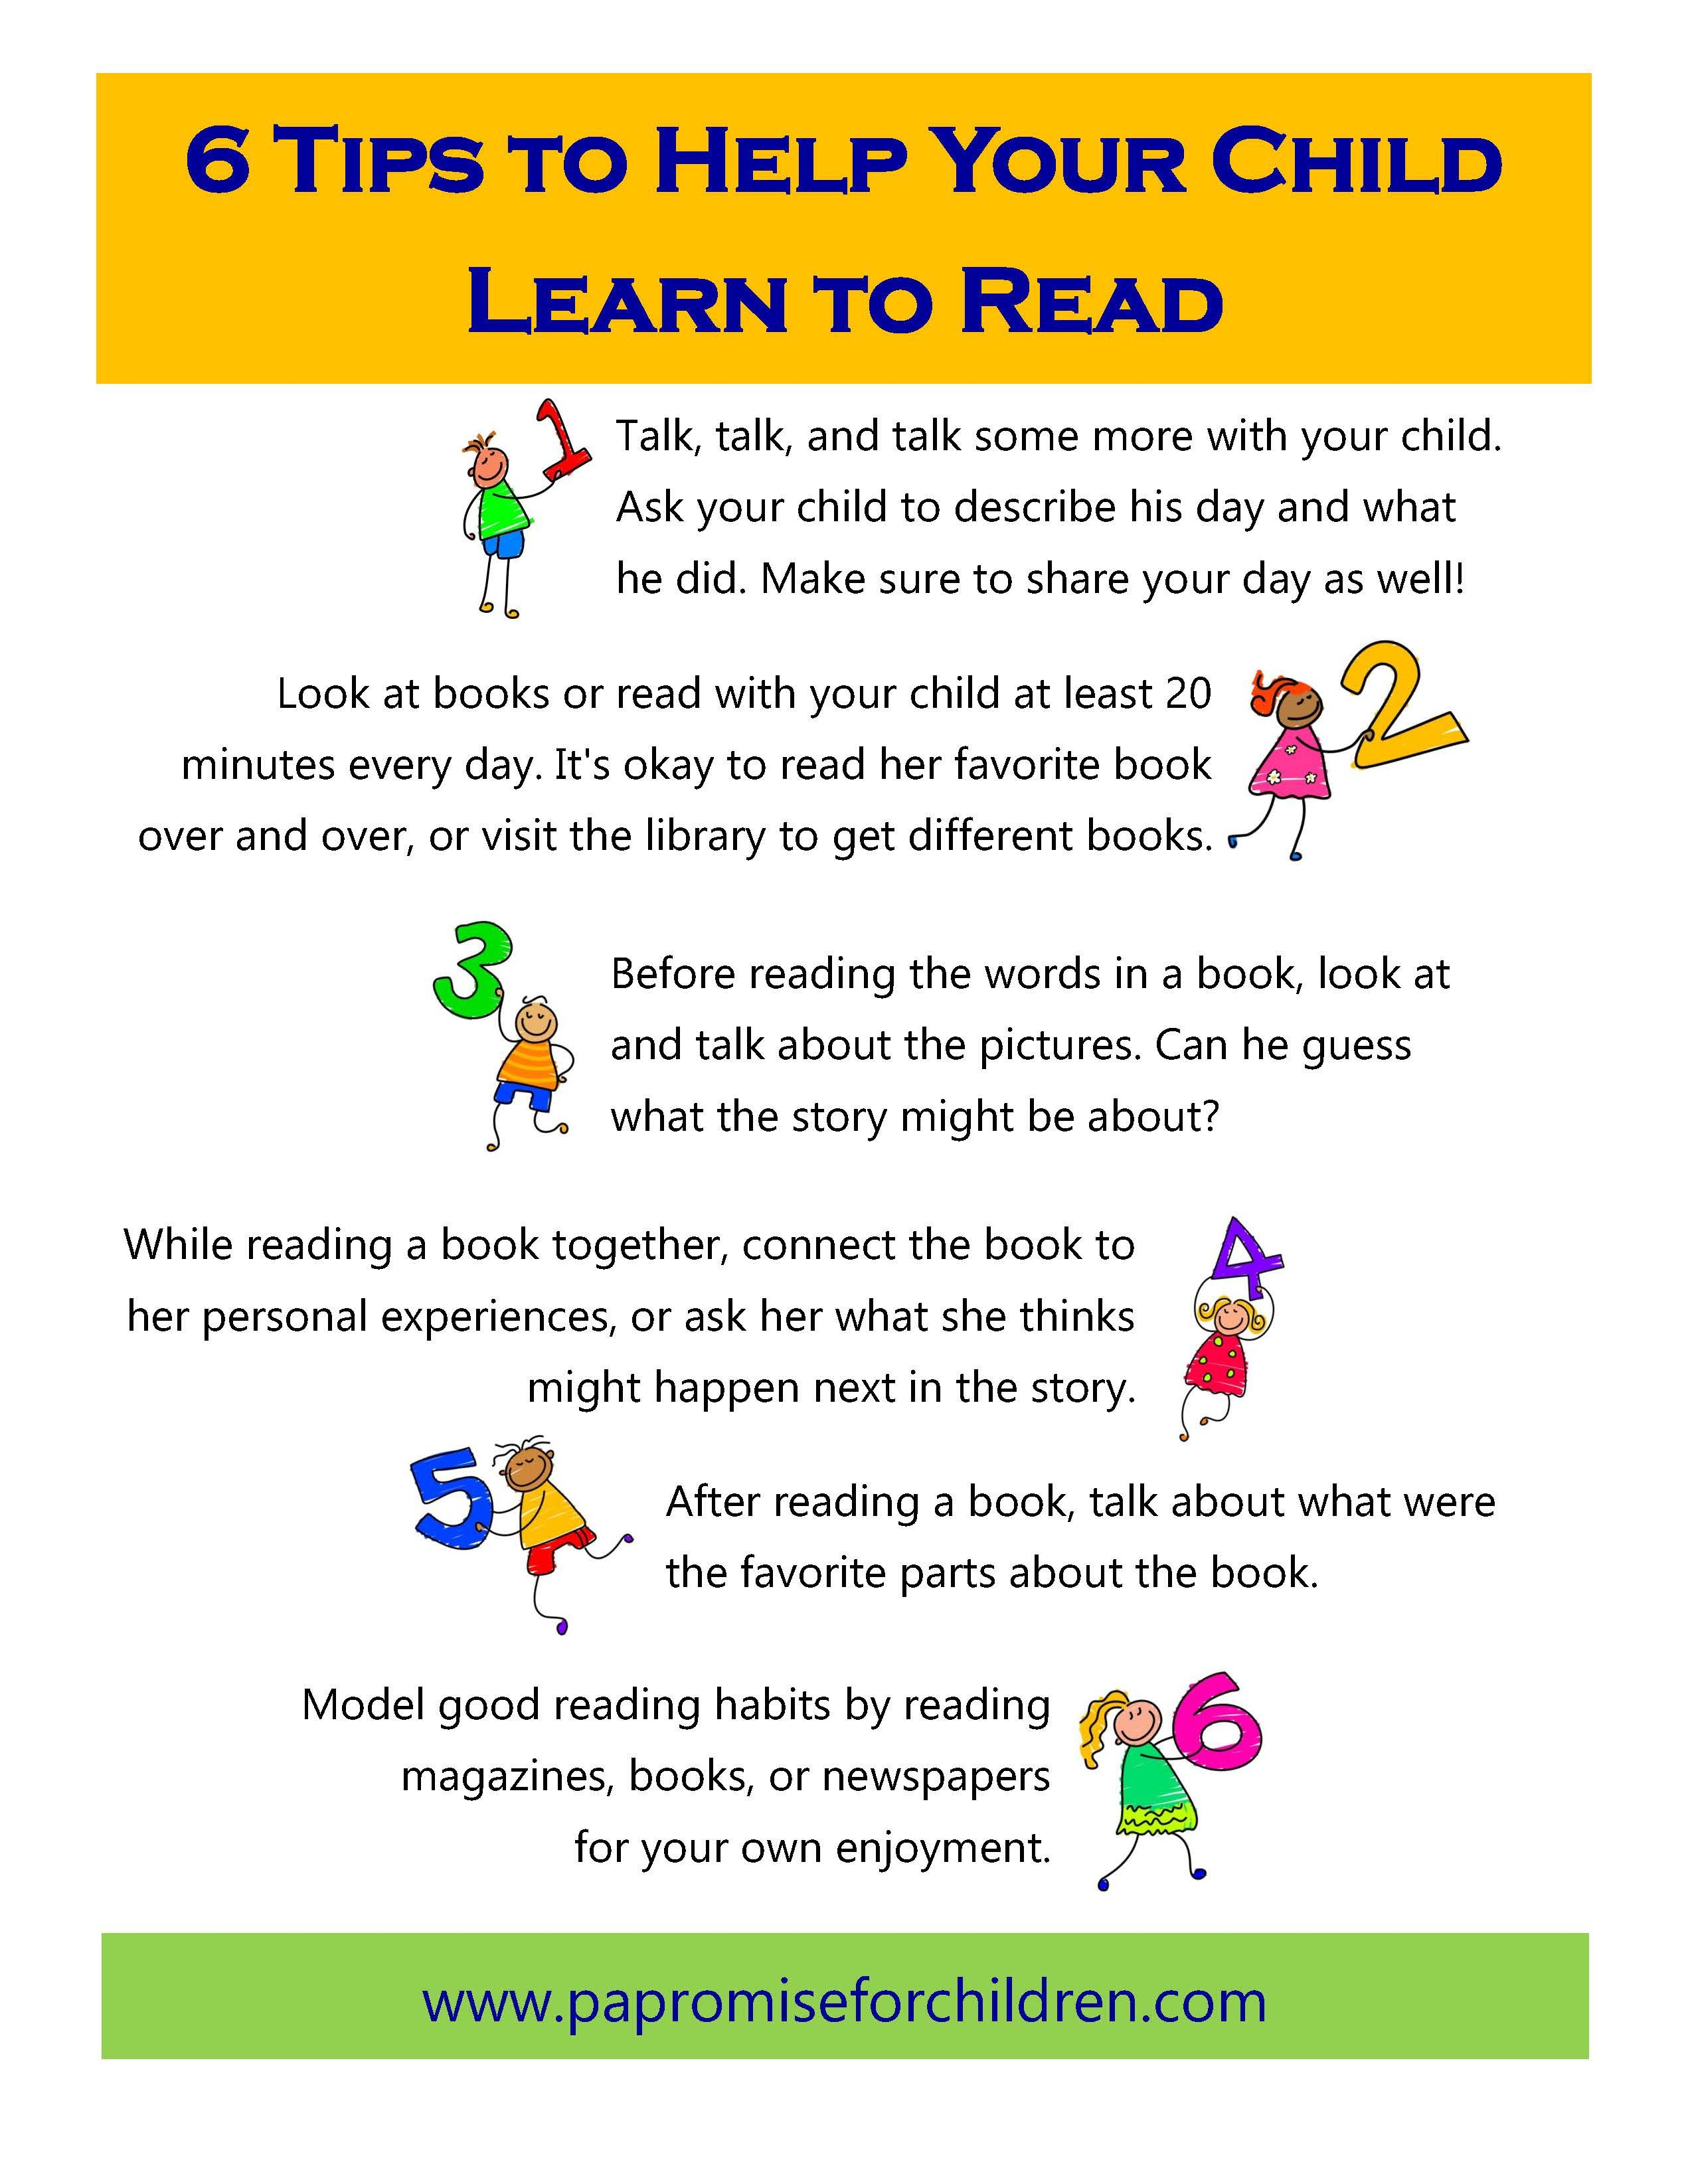 Six Tips To Help Your Child Learn To Read Www Papromiseforchildren Com Learn To Read Kids Learning Reading Skills How to help child learn to read